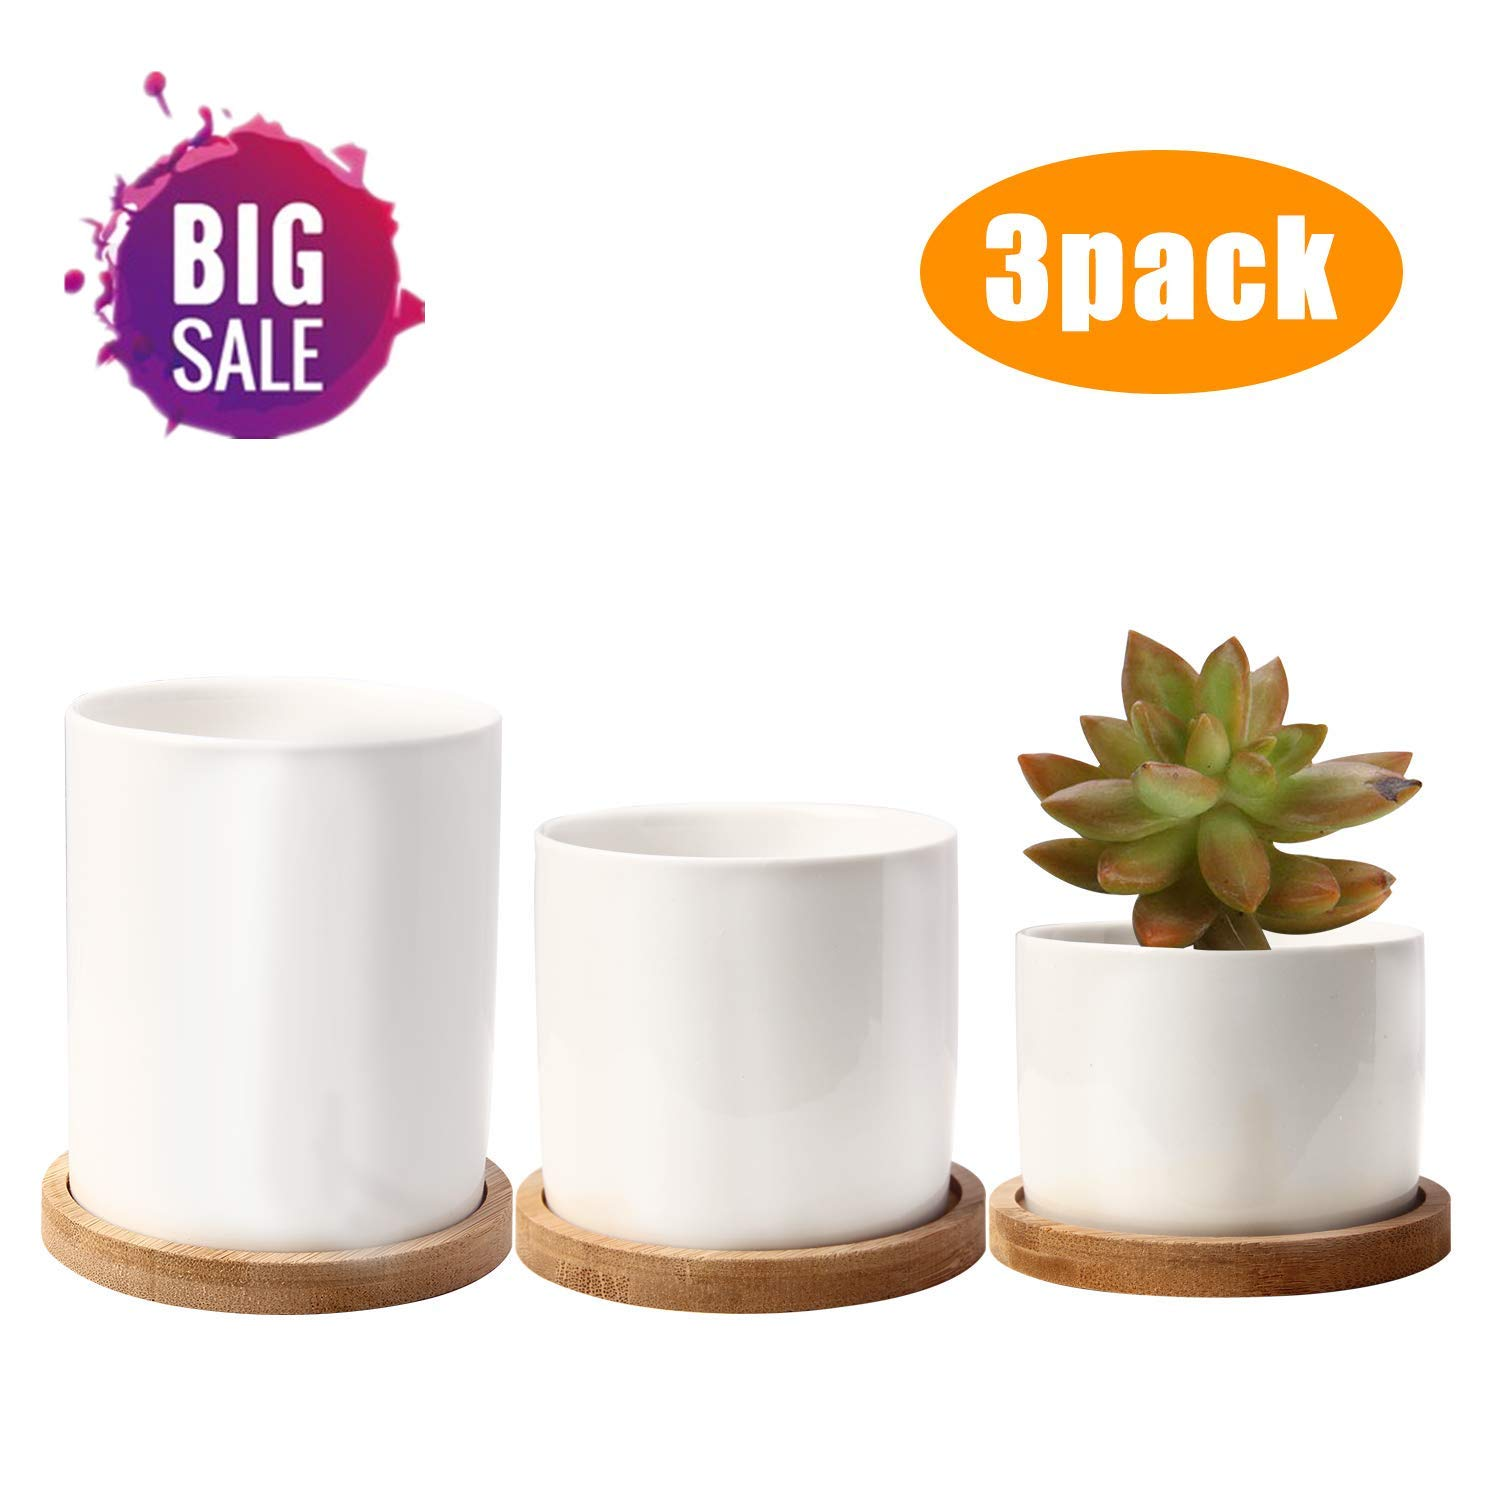 Ceramic Succulent Planter Pot With Drainage Small to Medium,Round Modern Flower Pots 3.15 Inch,White Garden Pots With Bamboo Tray For Flower,Cactu,Succulent,Plant Pots With Holes Different Size Set of